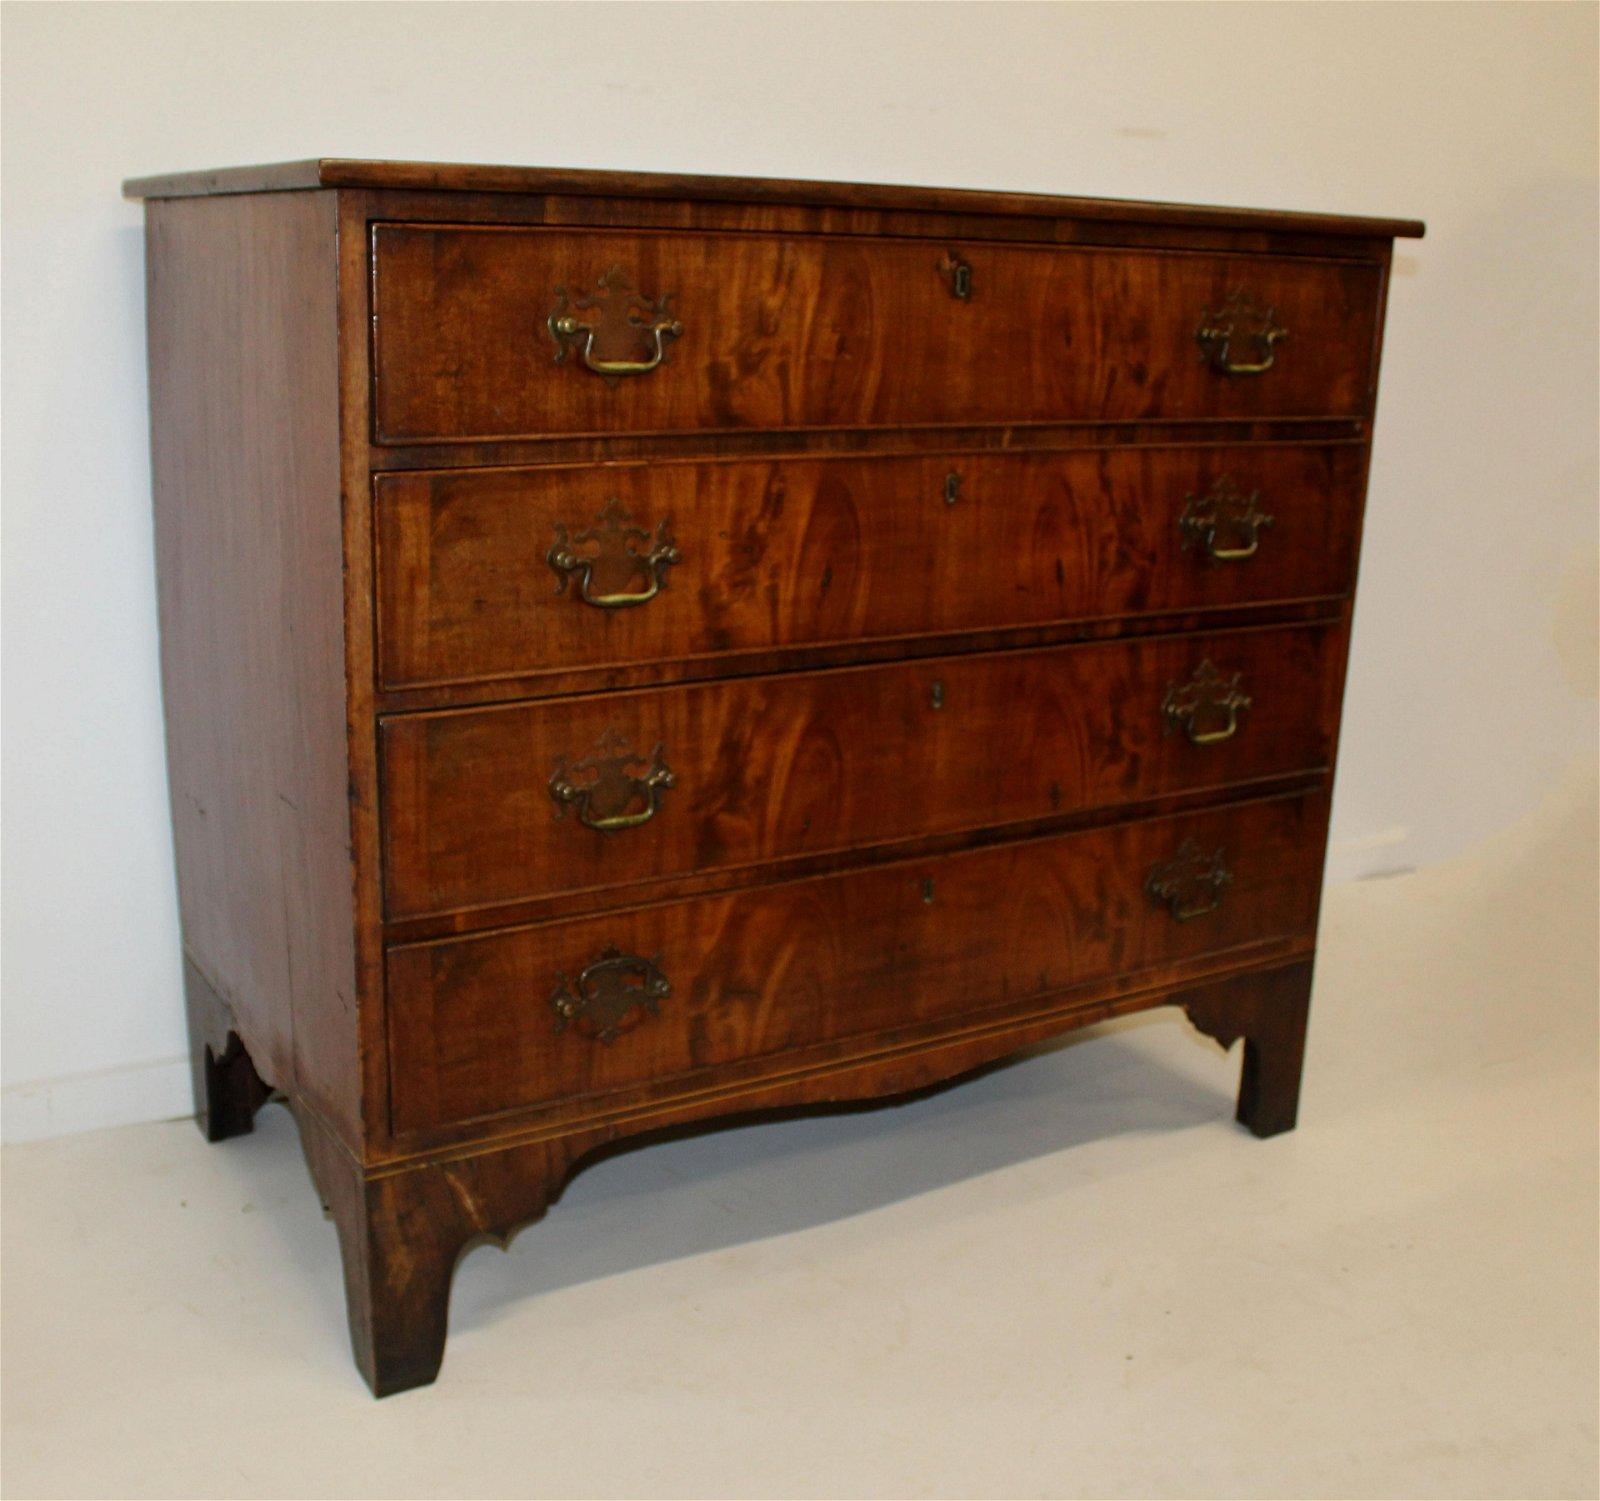 Chippendale four drawer chest